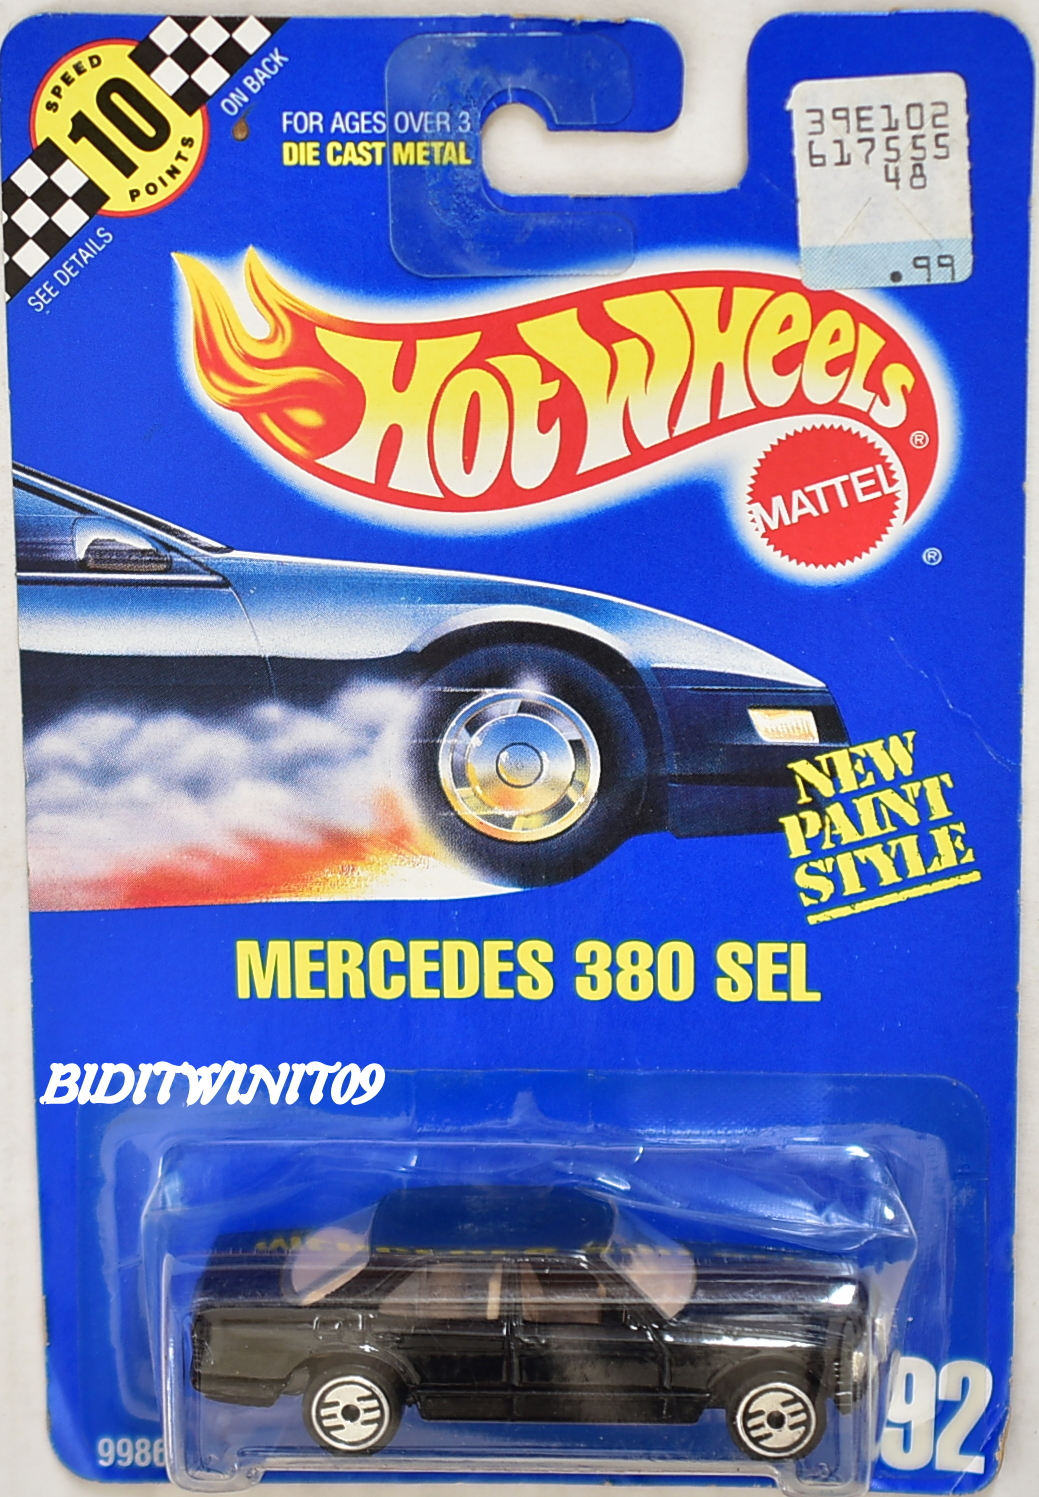 HOT WHEELS 1990 BLUE CARD MERCEDES 380 SEL #92 OPEN STEERING WHEELS E+